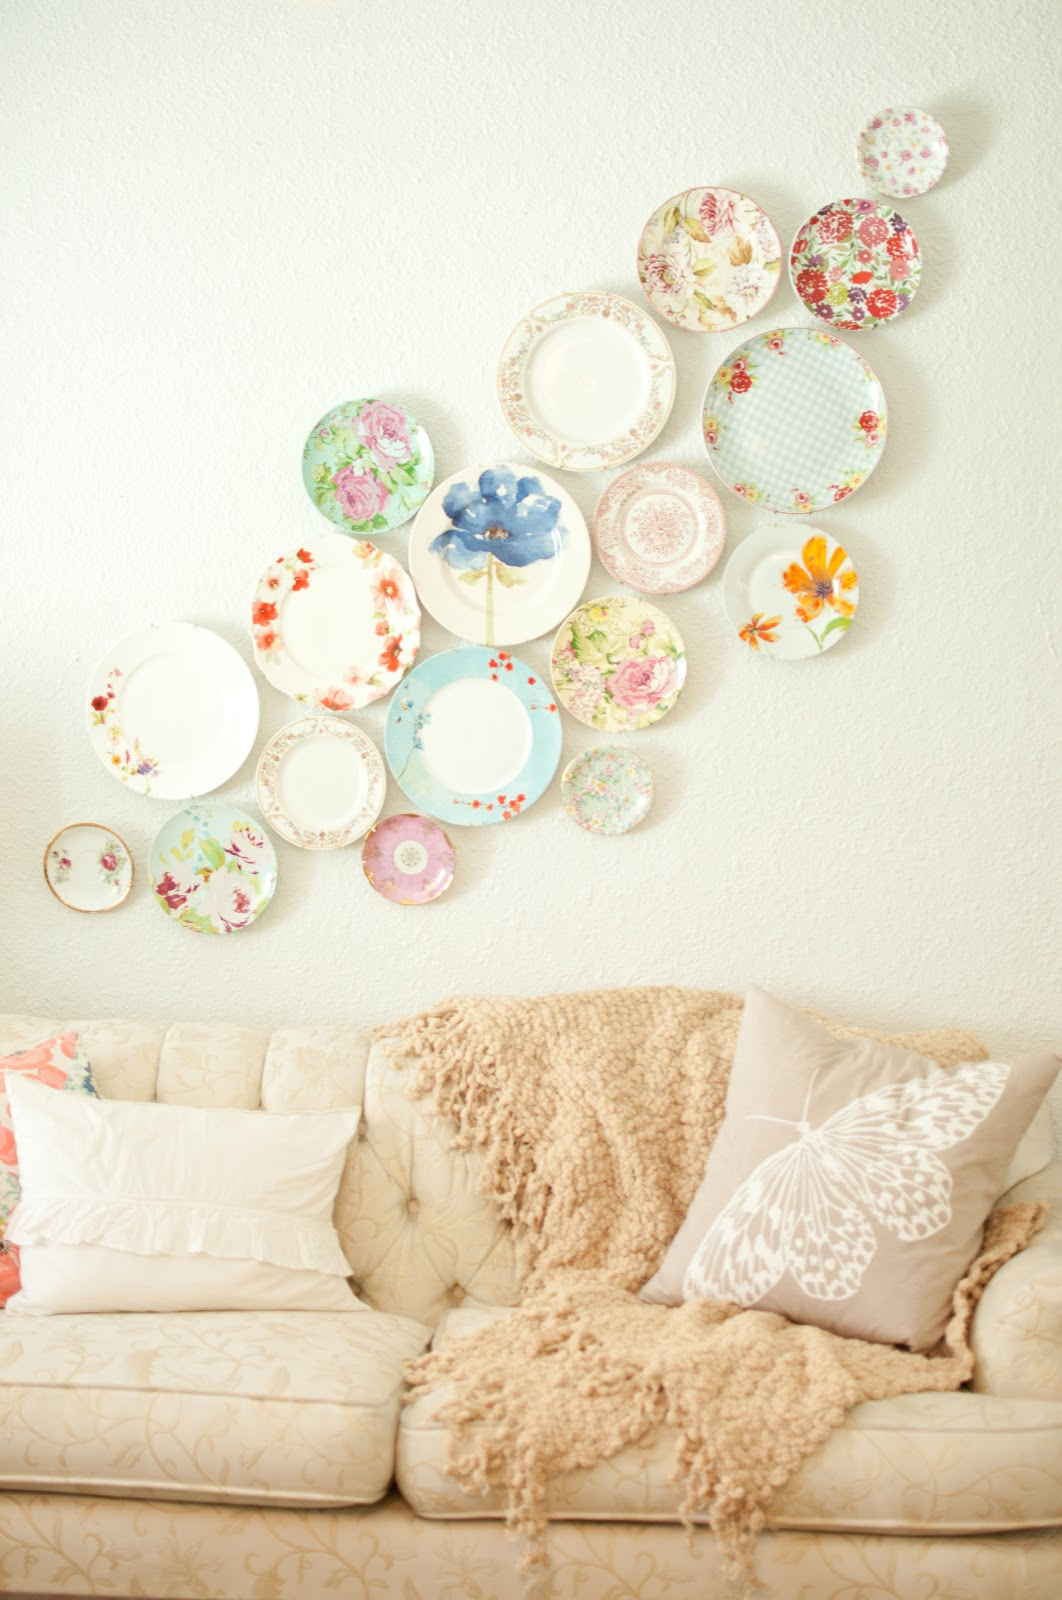 Domestic Fashionista: Decorating with Plates